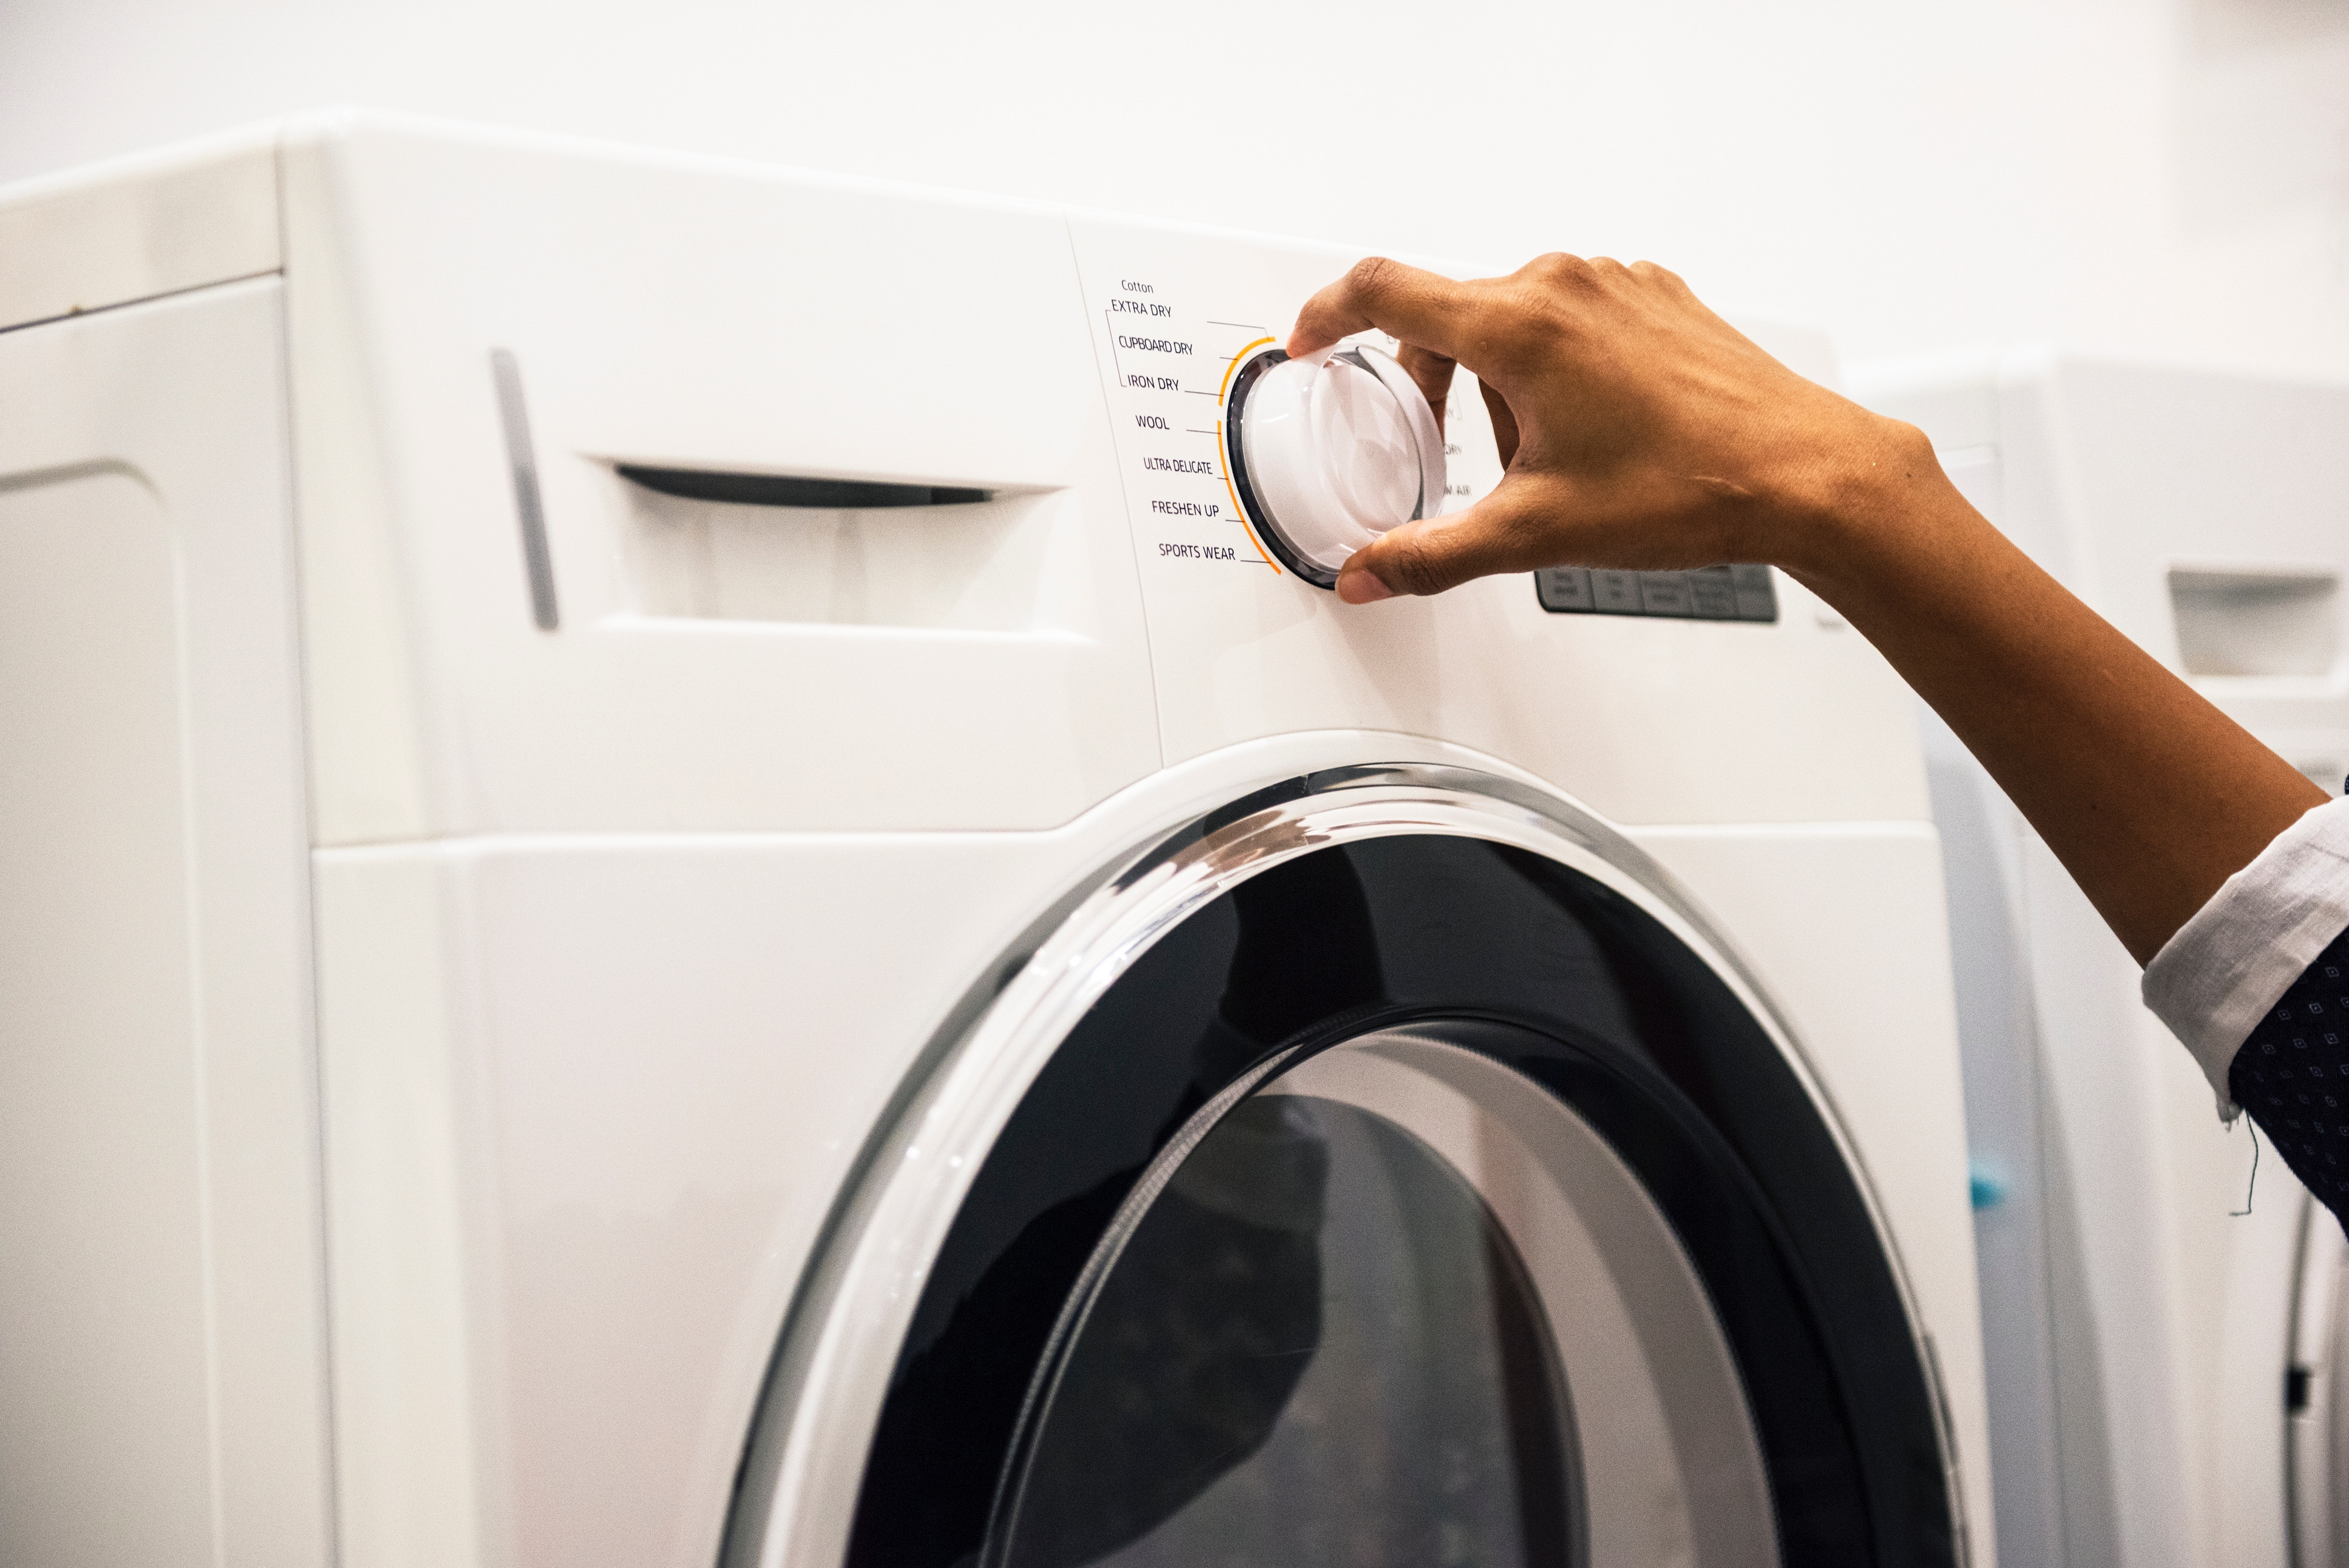 wash new clothing to reduce toxins, airtopia